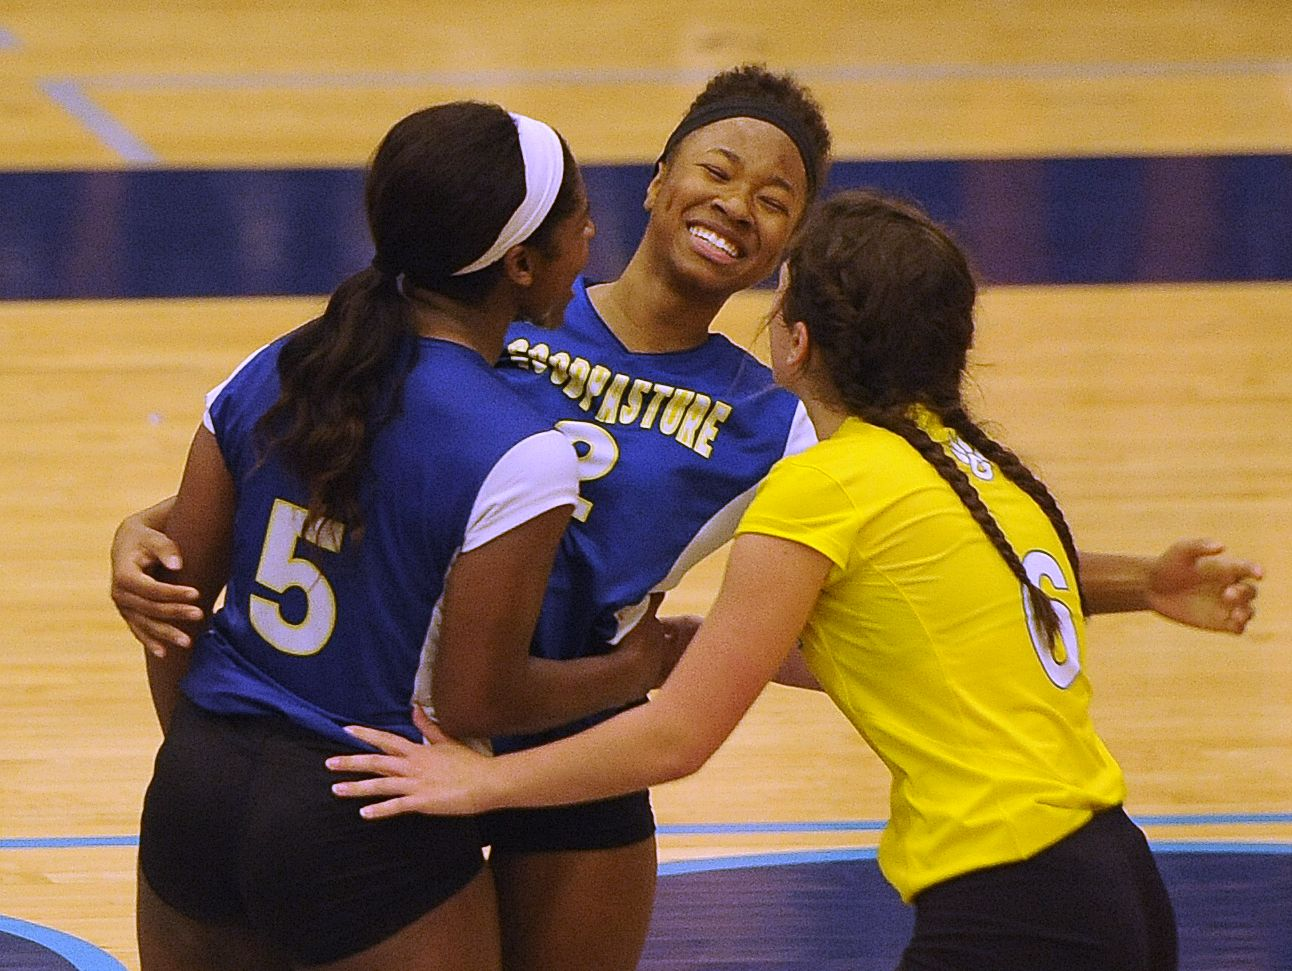 Goodpasture's Jayleigh Rogan (5), Victoria Johnson (2) and Caroline Steele (6) celebrate a point during the Lady Cougars' 3-1 win over Summertown in the Class A state volleyball tournament on Wednesday.